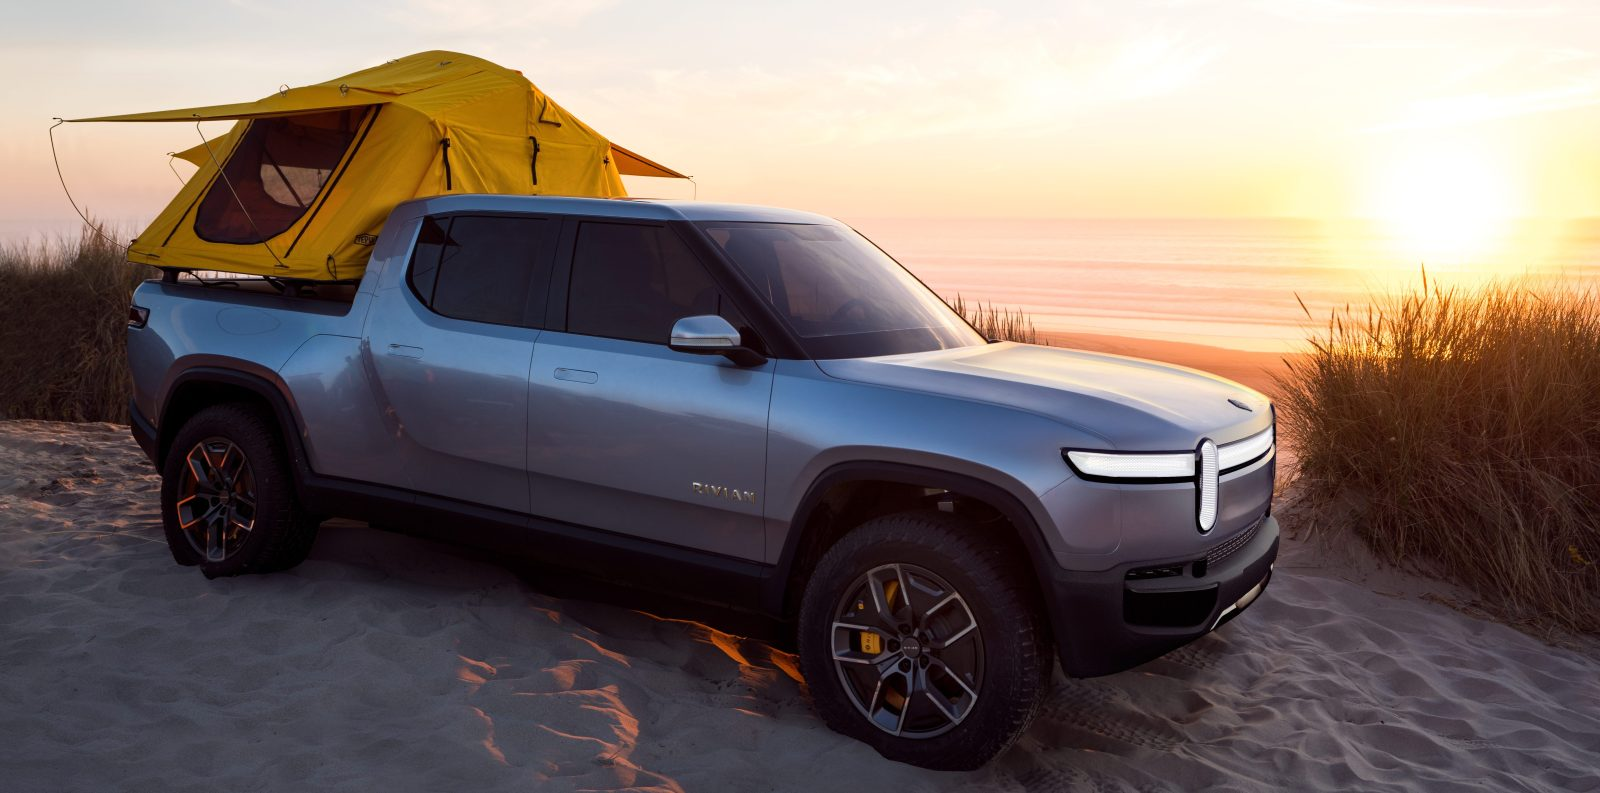 Rivian unveils all-electric pickup truck with unbelievable ...